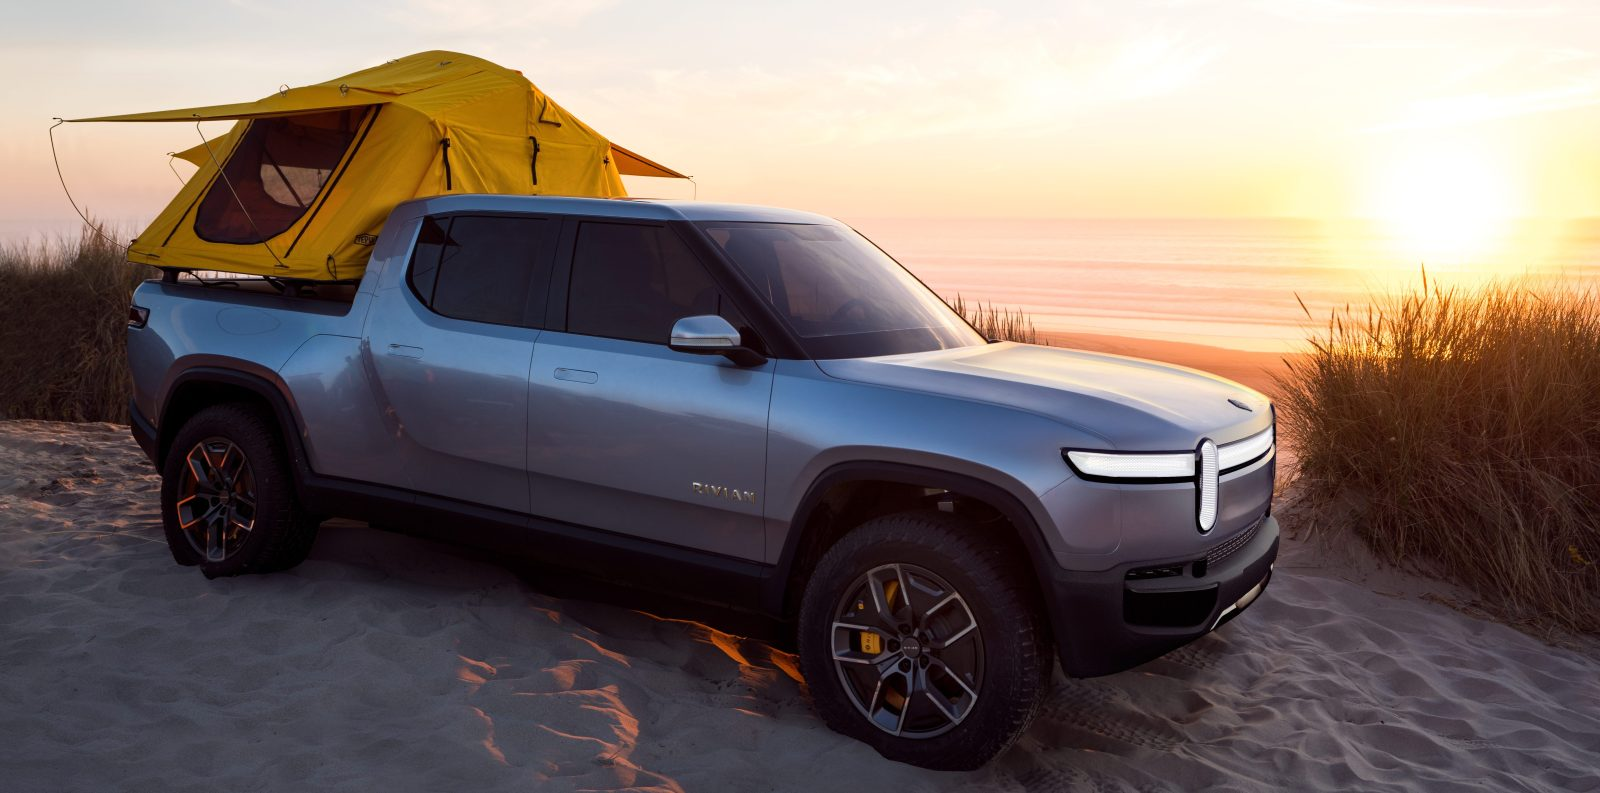 Rivian unveils all-electric pickup truck with unbelievable ...